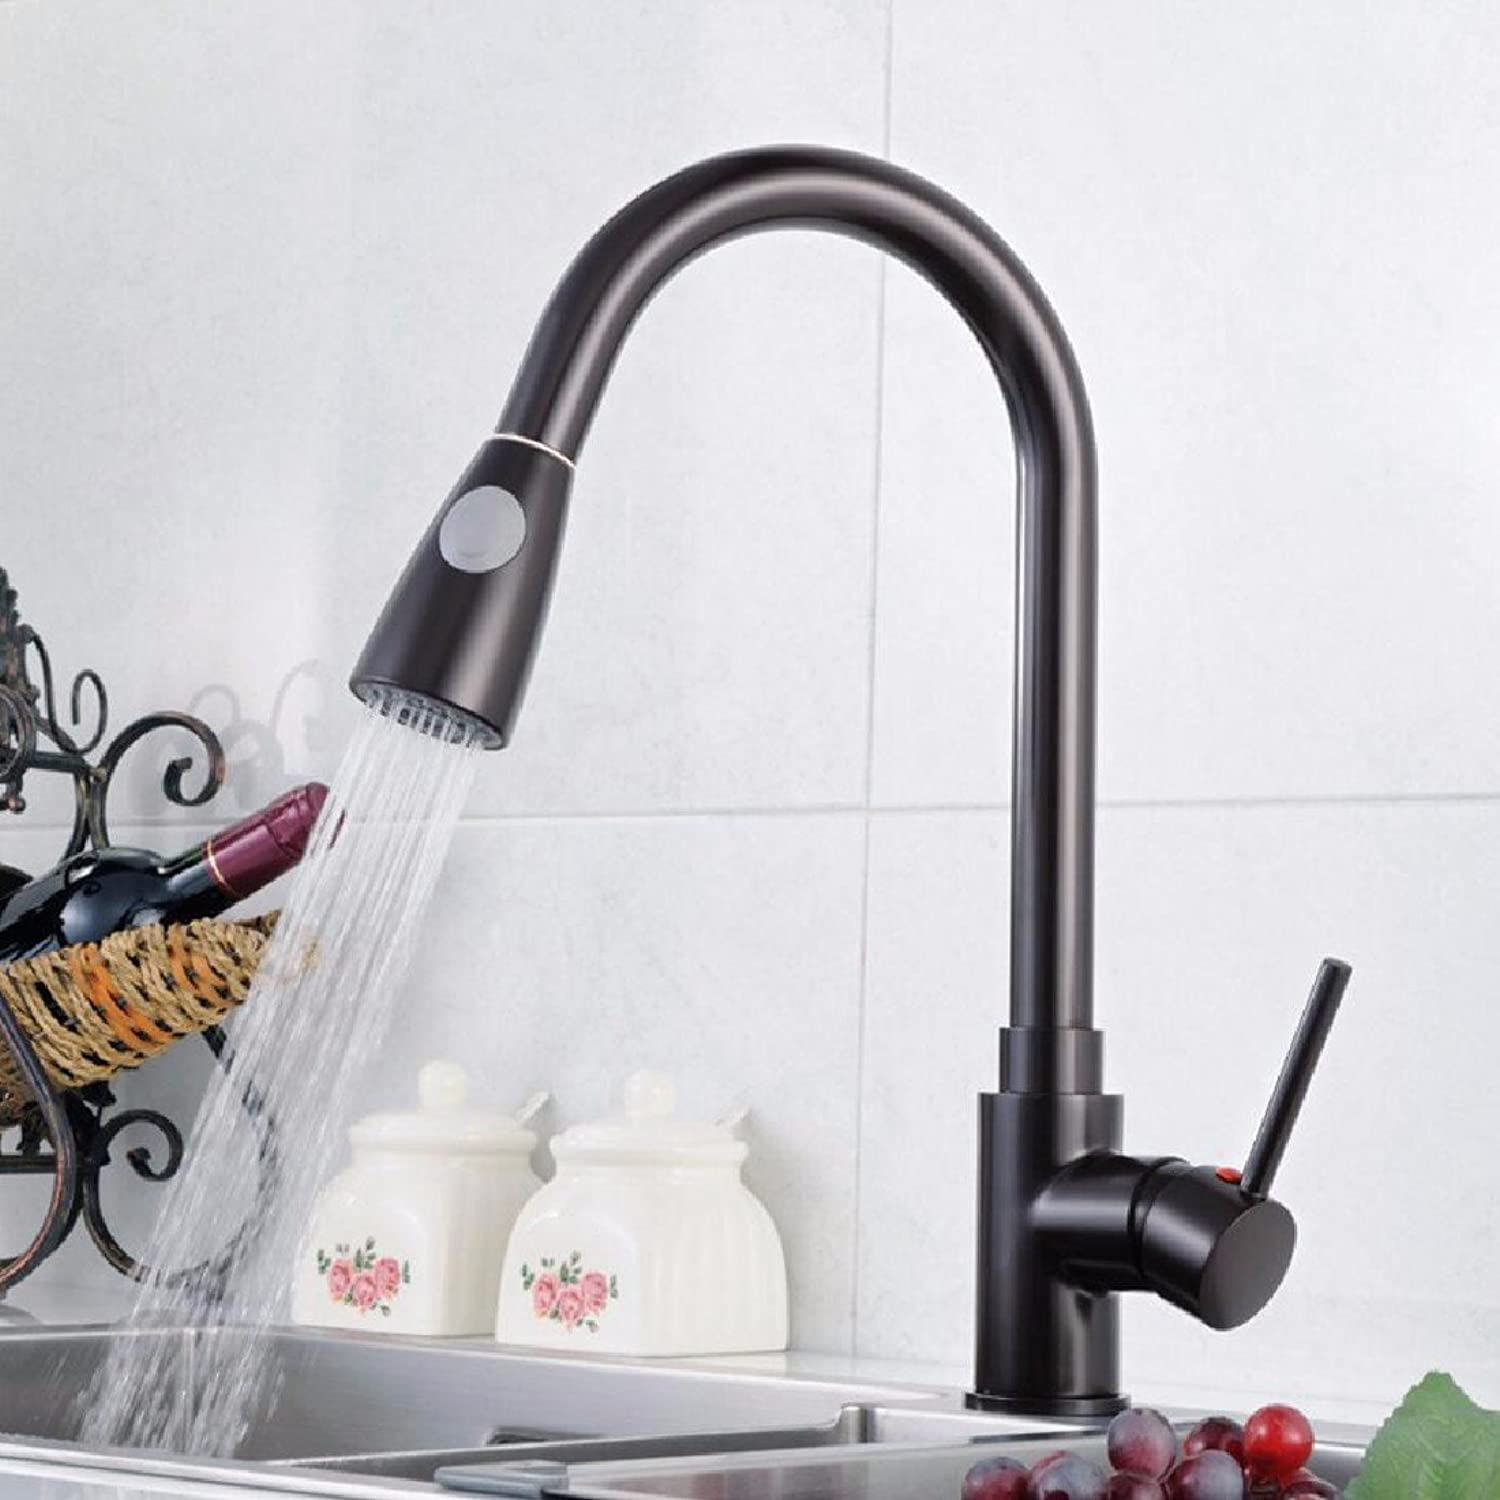 CJSH Kitchen Faucet Hot And Cold Faucet, Fast Hot Faucet Kitchen Sink Faucet